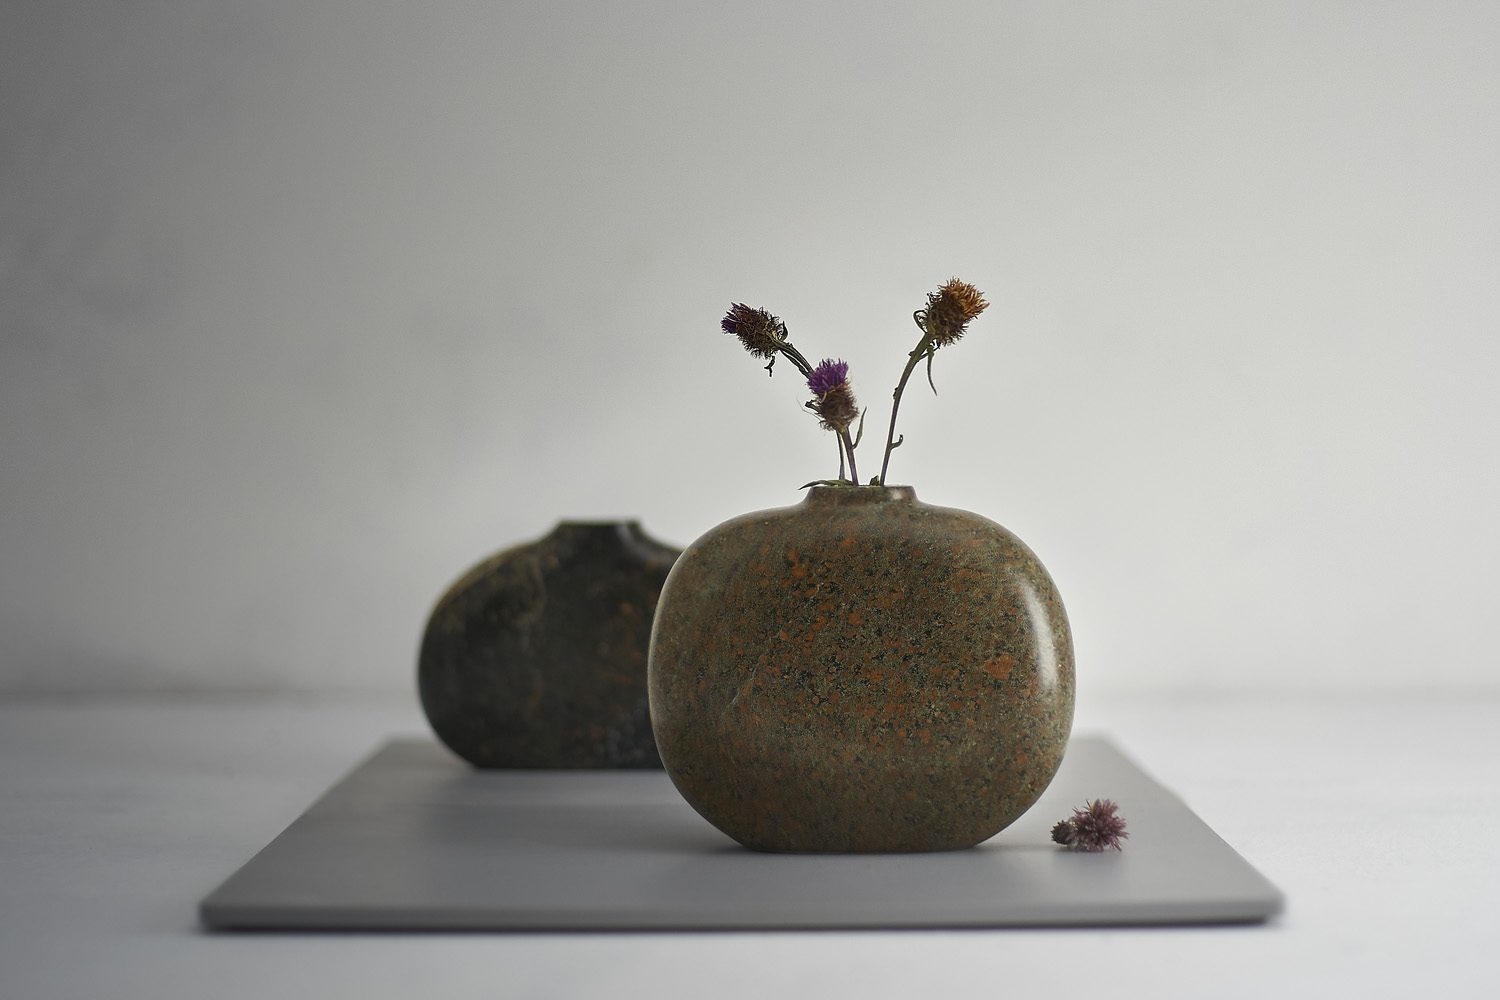 Still life product photograph of stone sculpture vases